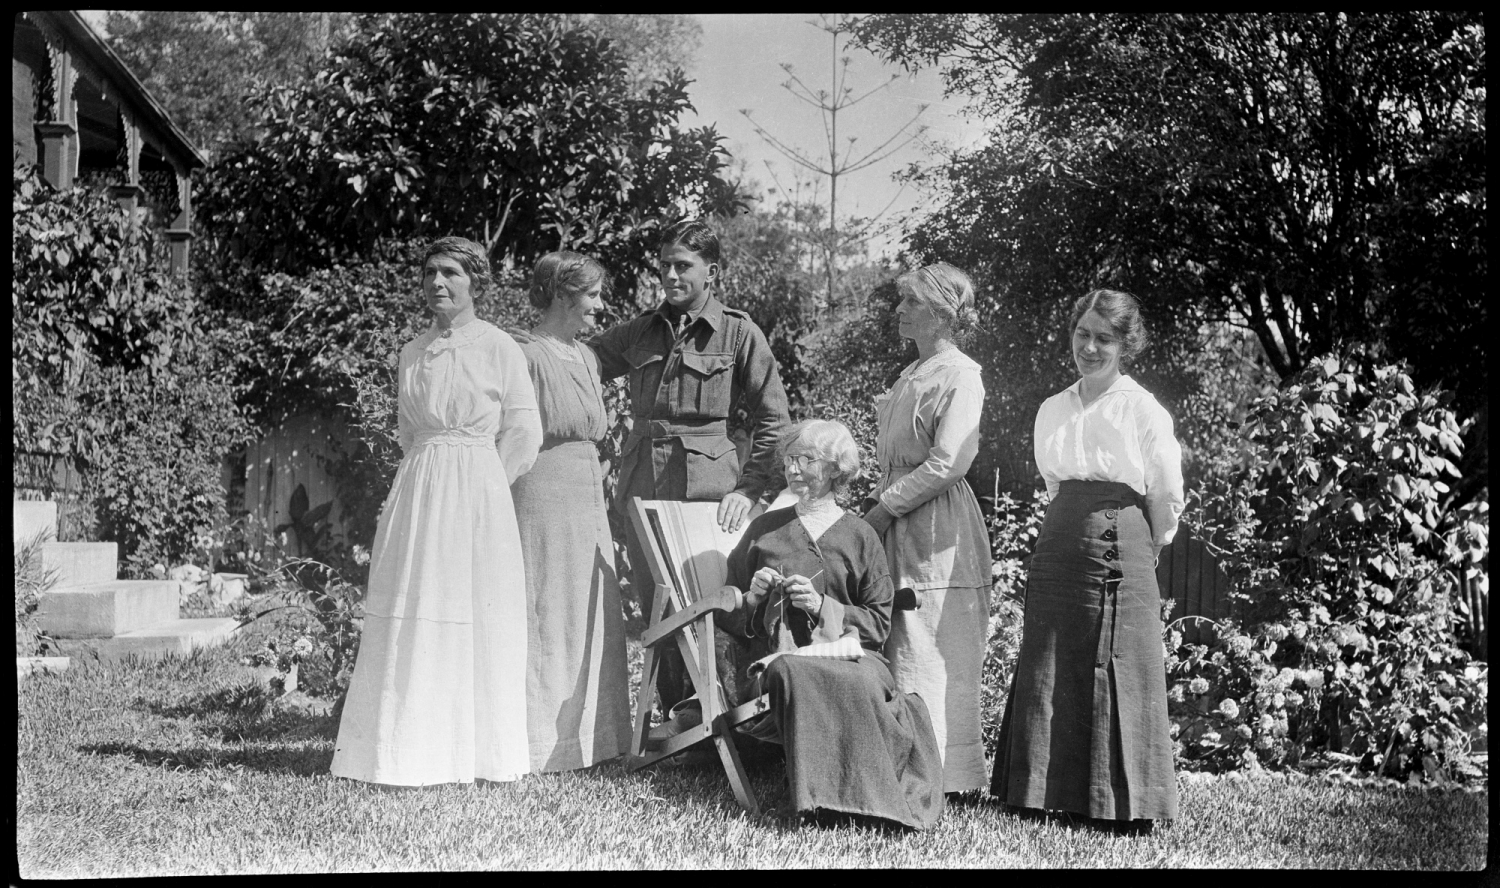 Group of women and one man standing around one seated woman in chair.